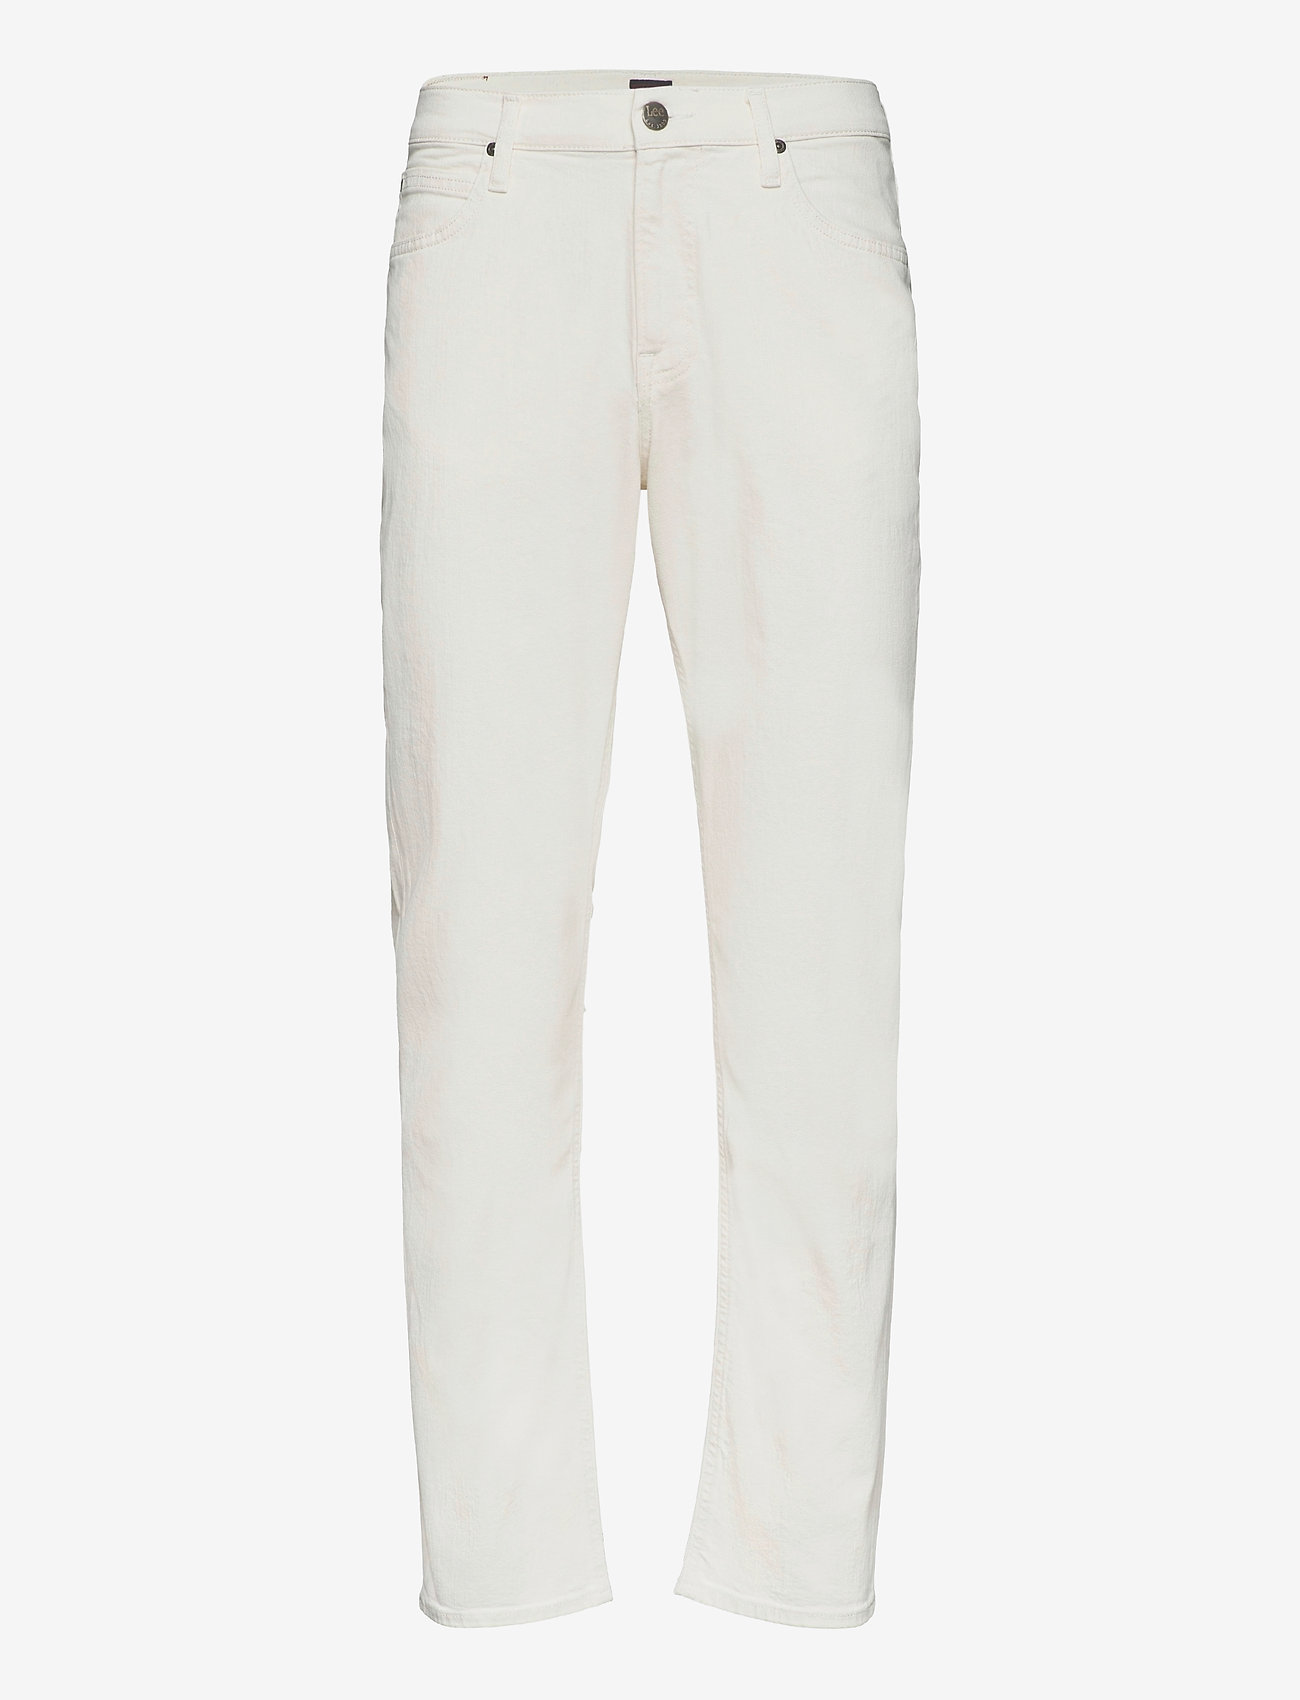 Lee Jeans - WEST - relaxed jeans - off white - 0